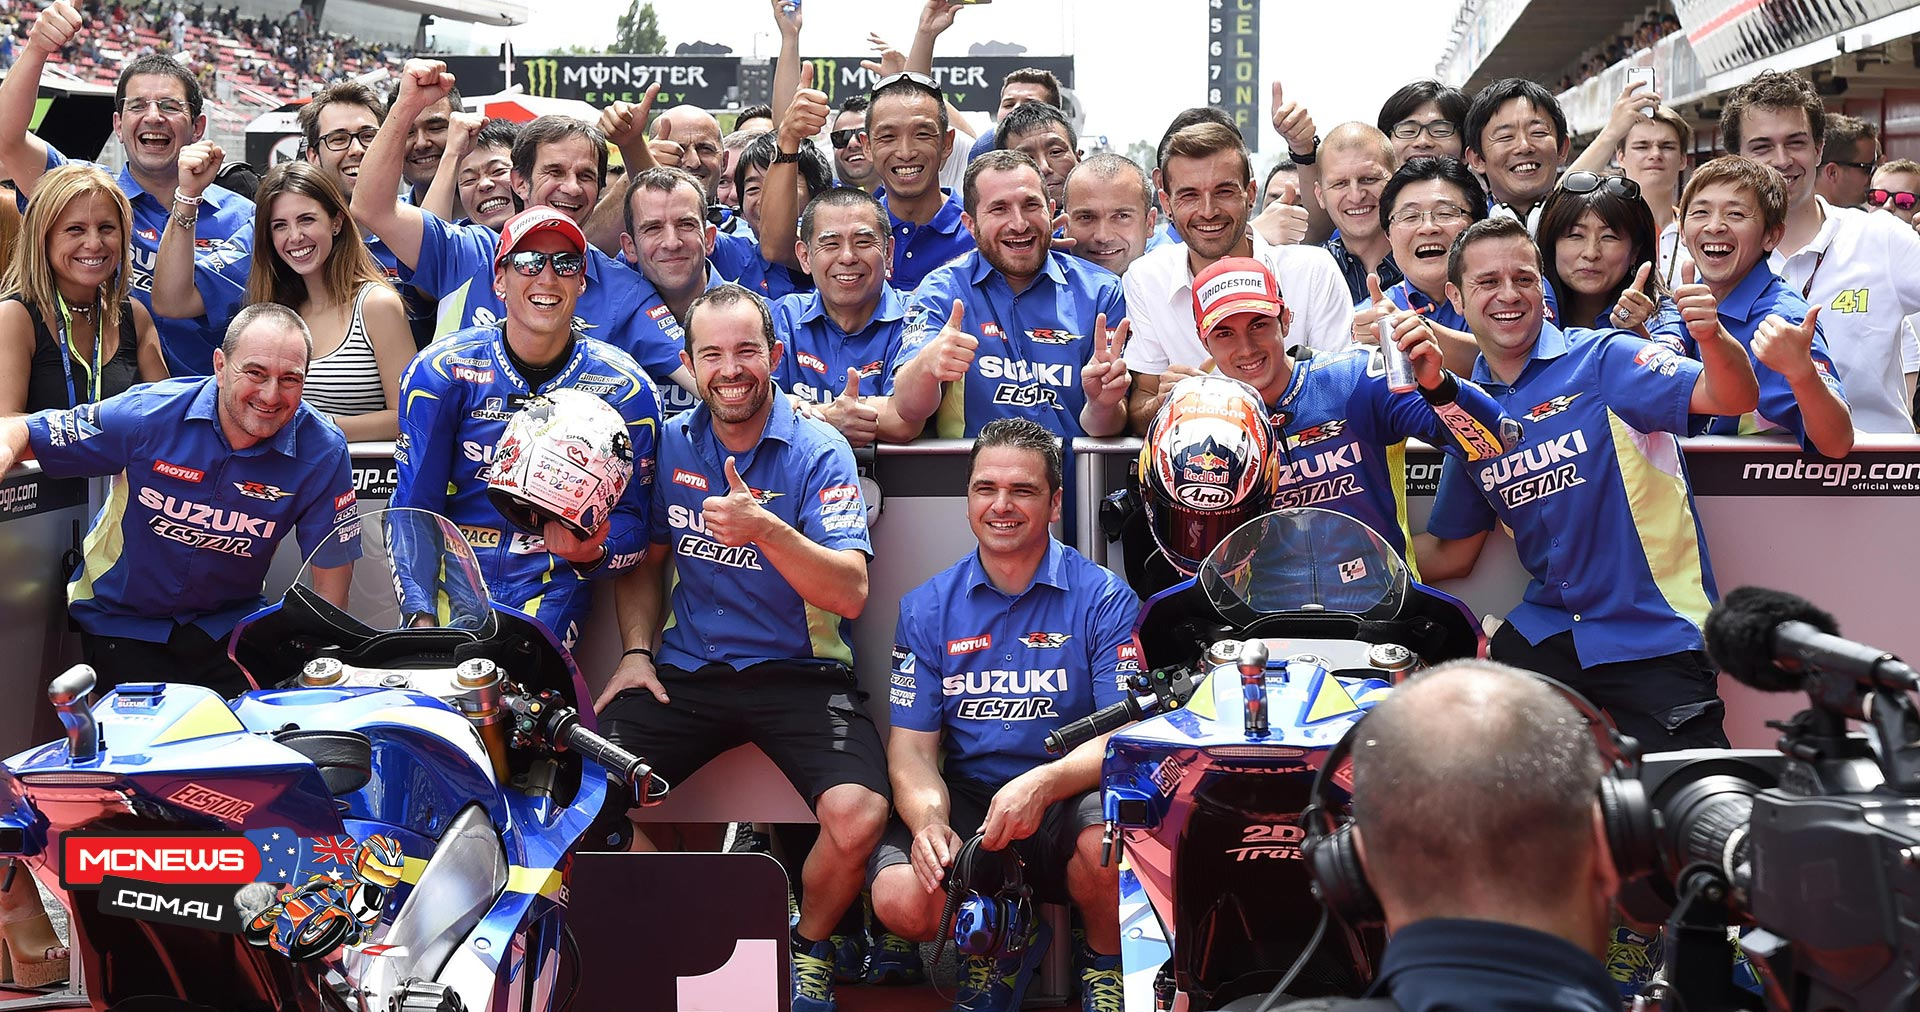 Team SUZUKI ECSTAR grabbed a historic result during qualifying for the Grand Prix of Catalunya as they took first-and second places on the grid with riders Aleix Espargaro and Maverick Viñales.